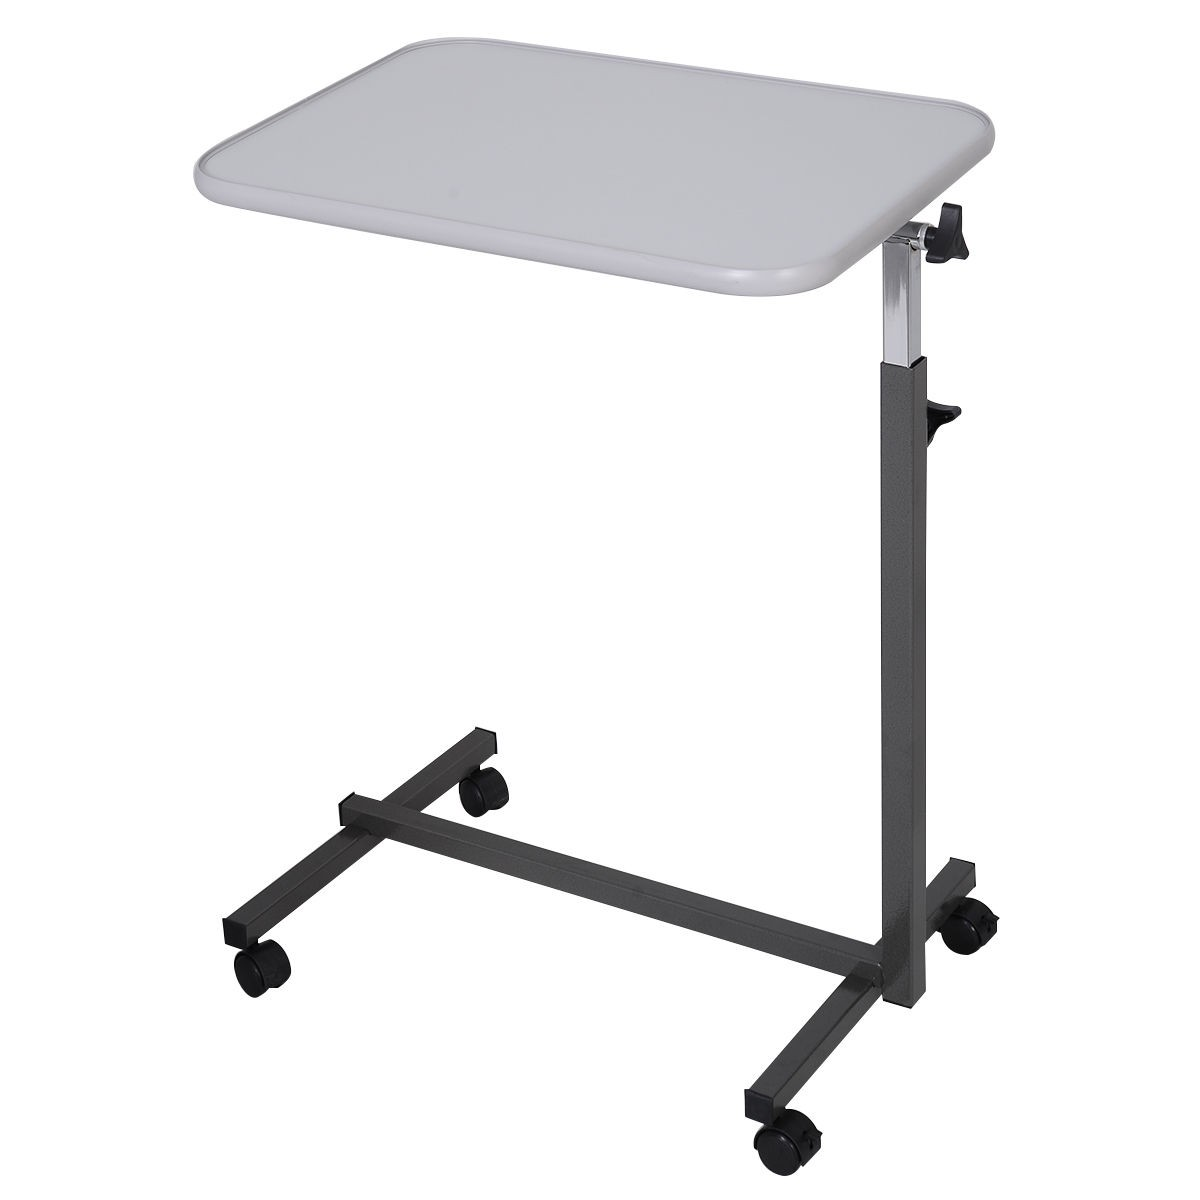 Overbed table food tray non tilt top bed hospital adjustable rolling - New Overbed Table Food Tray Top Bed Hospital Adjustable Rolling Laptop Desk Gray Uschw49070gr This Is Us Stock With Fast Shipping